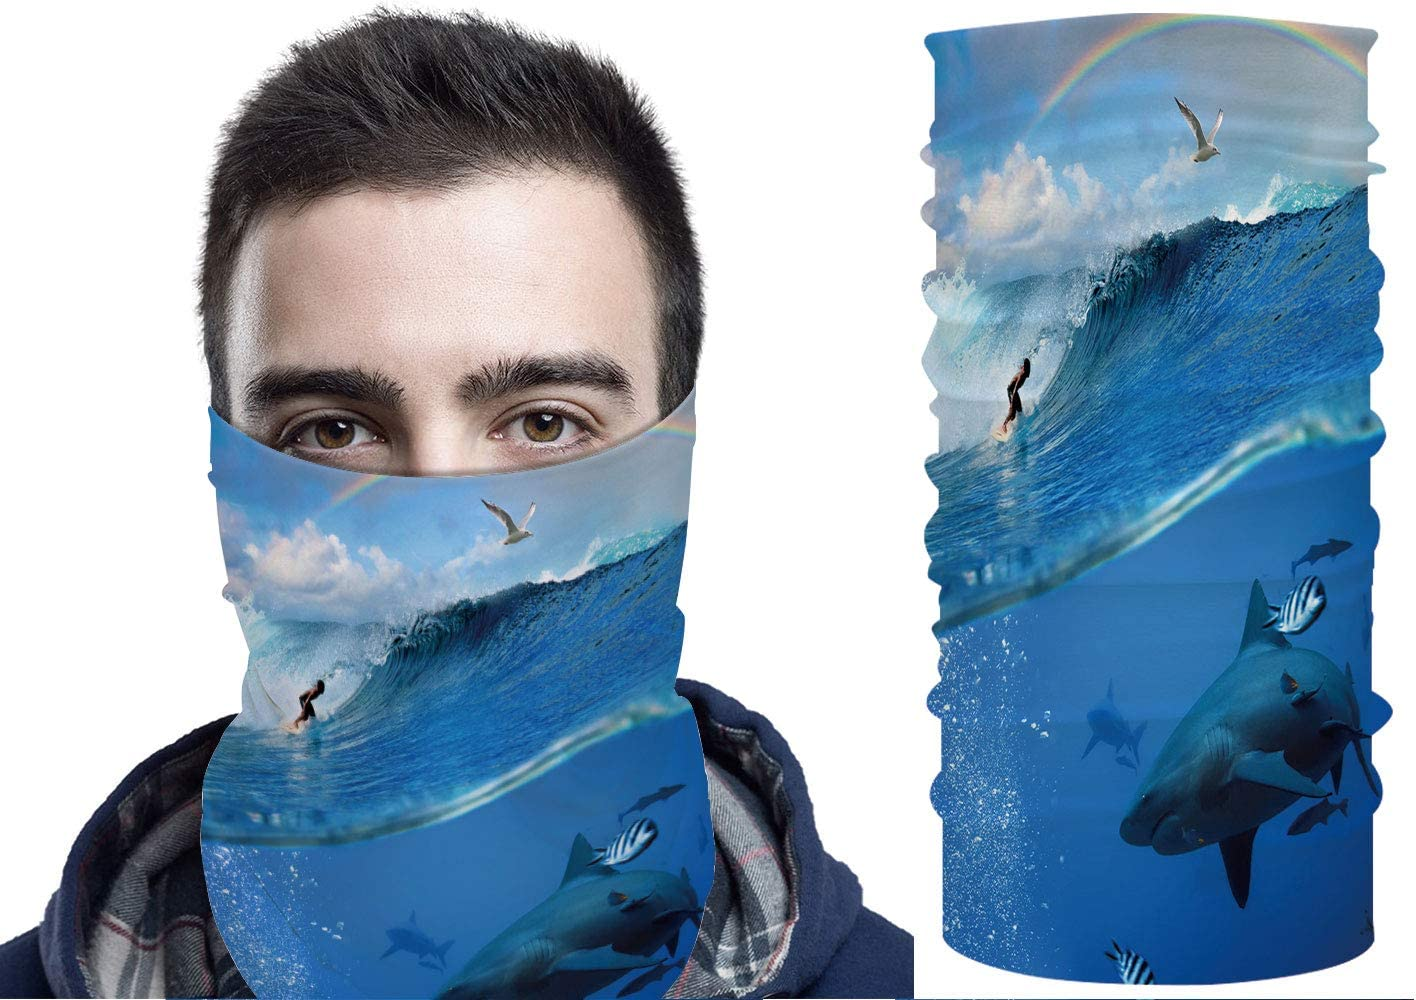 YOLIYANA Unisex Seamless Neck Gaiter Tube Scarf Headwear, Sunset Over Water Motorcycle Face Scarf for Women Men Face Scarf 19.6x9.8in №007069